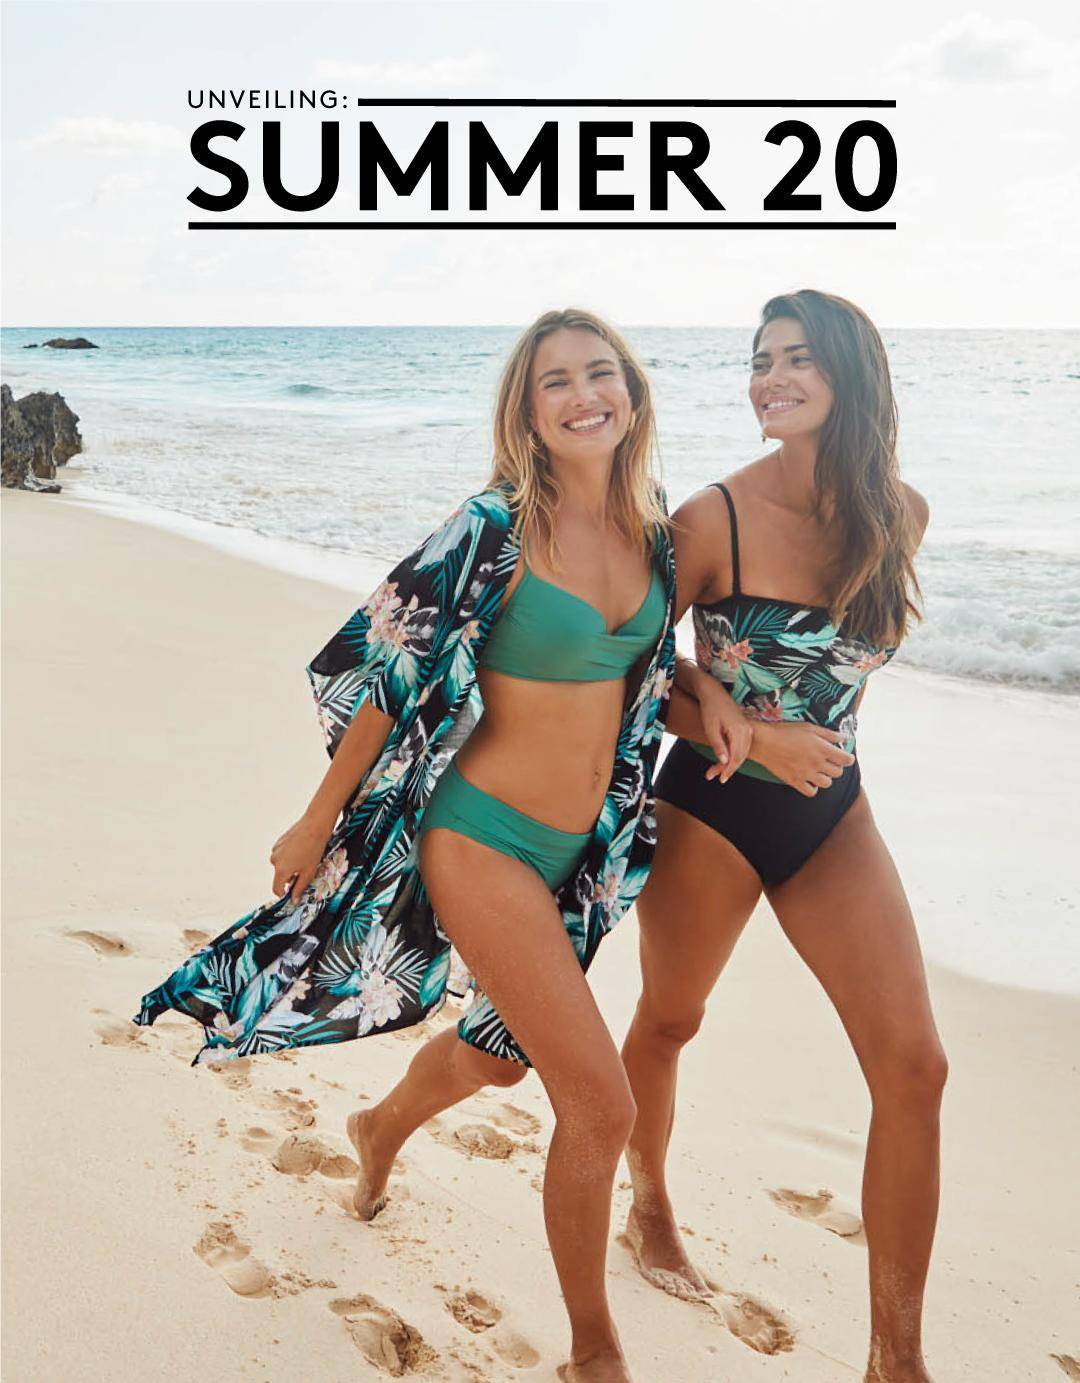 Read Unveiling our Summer 2020 collection!